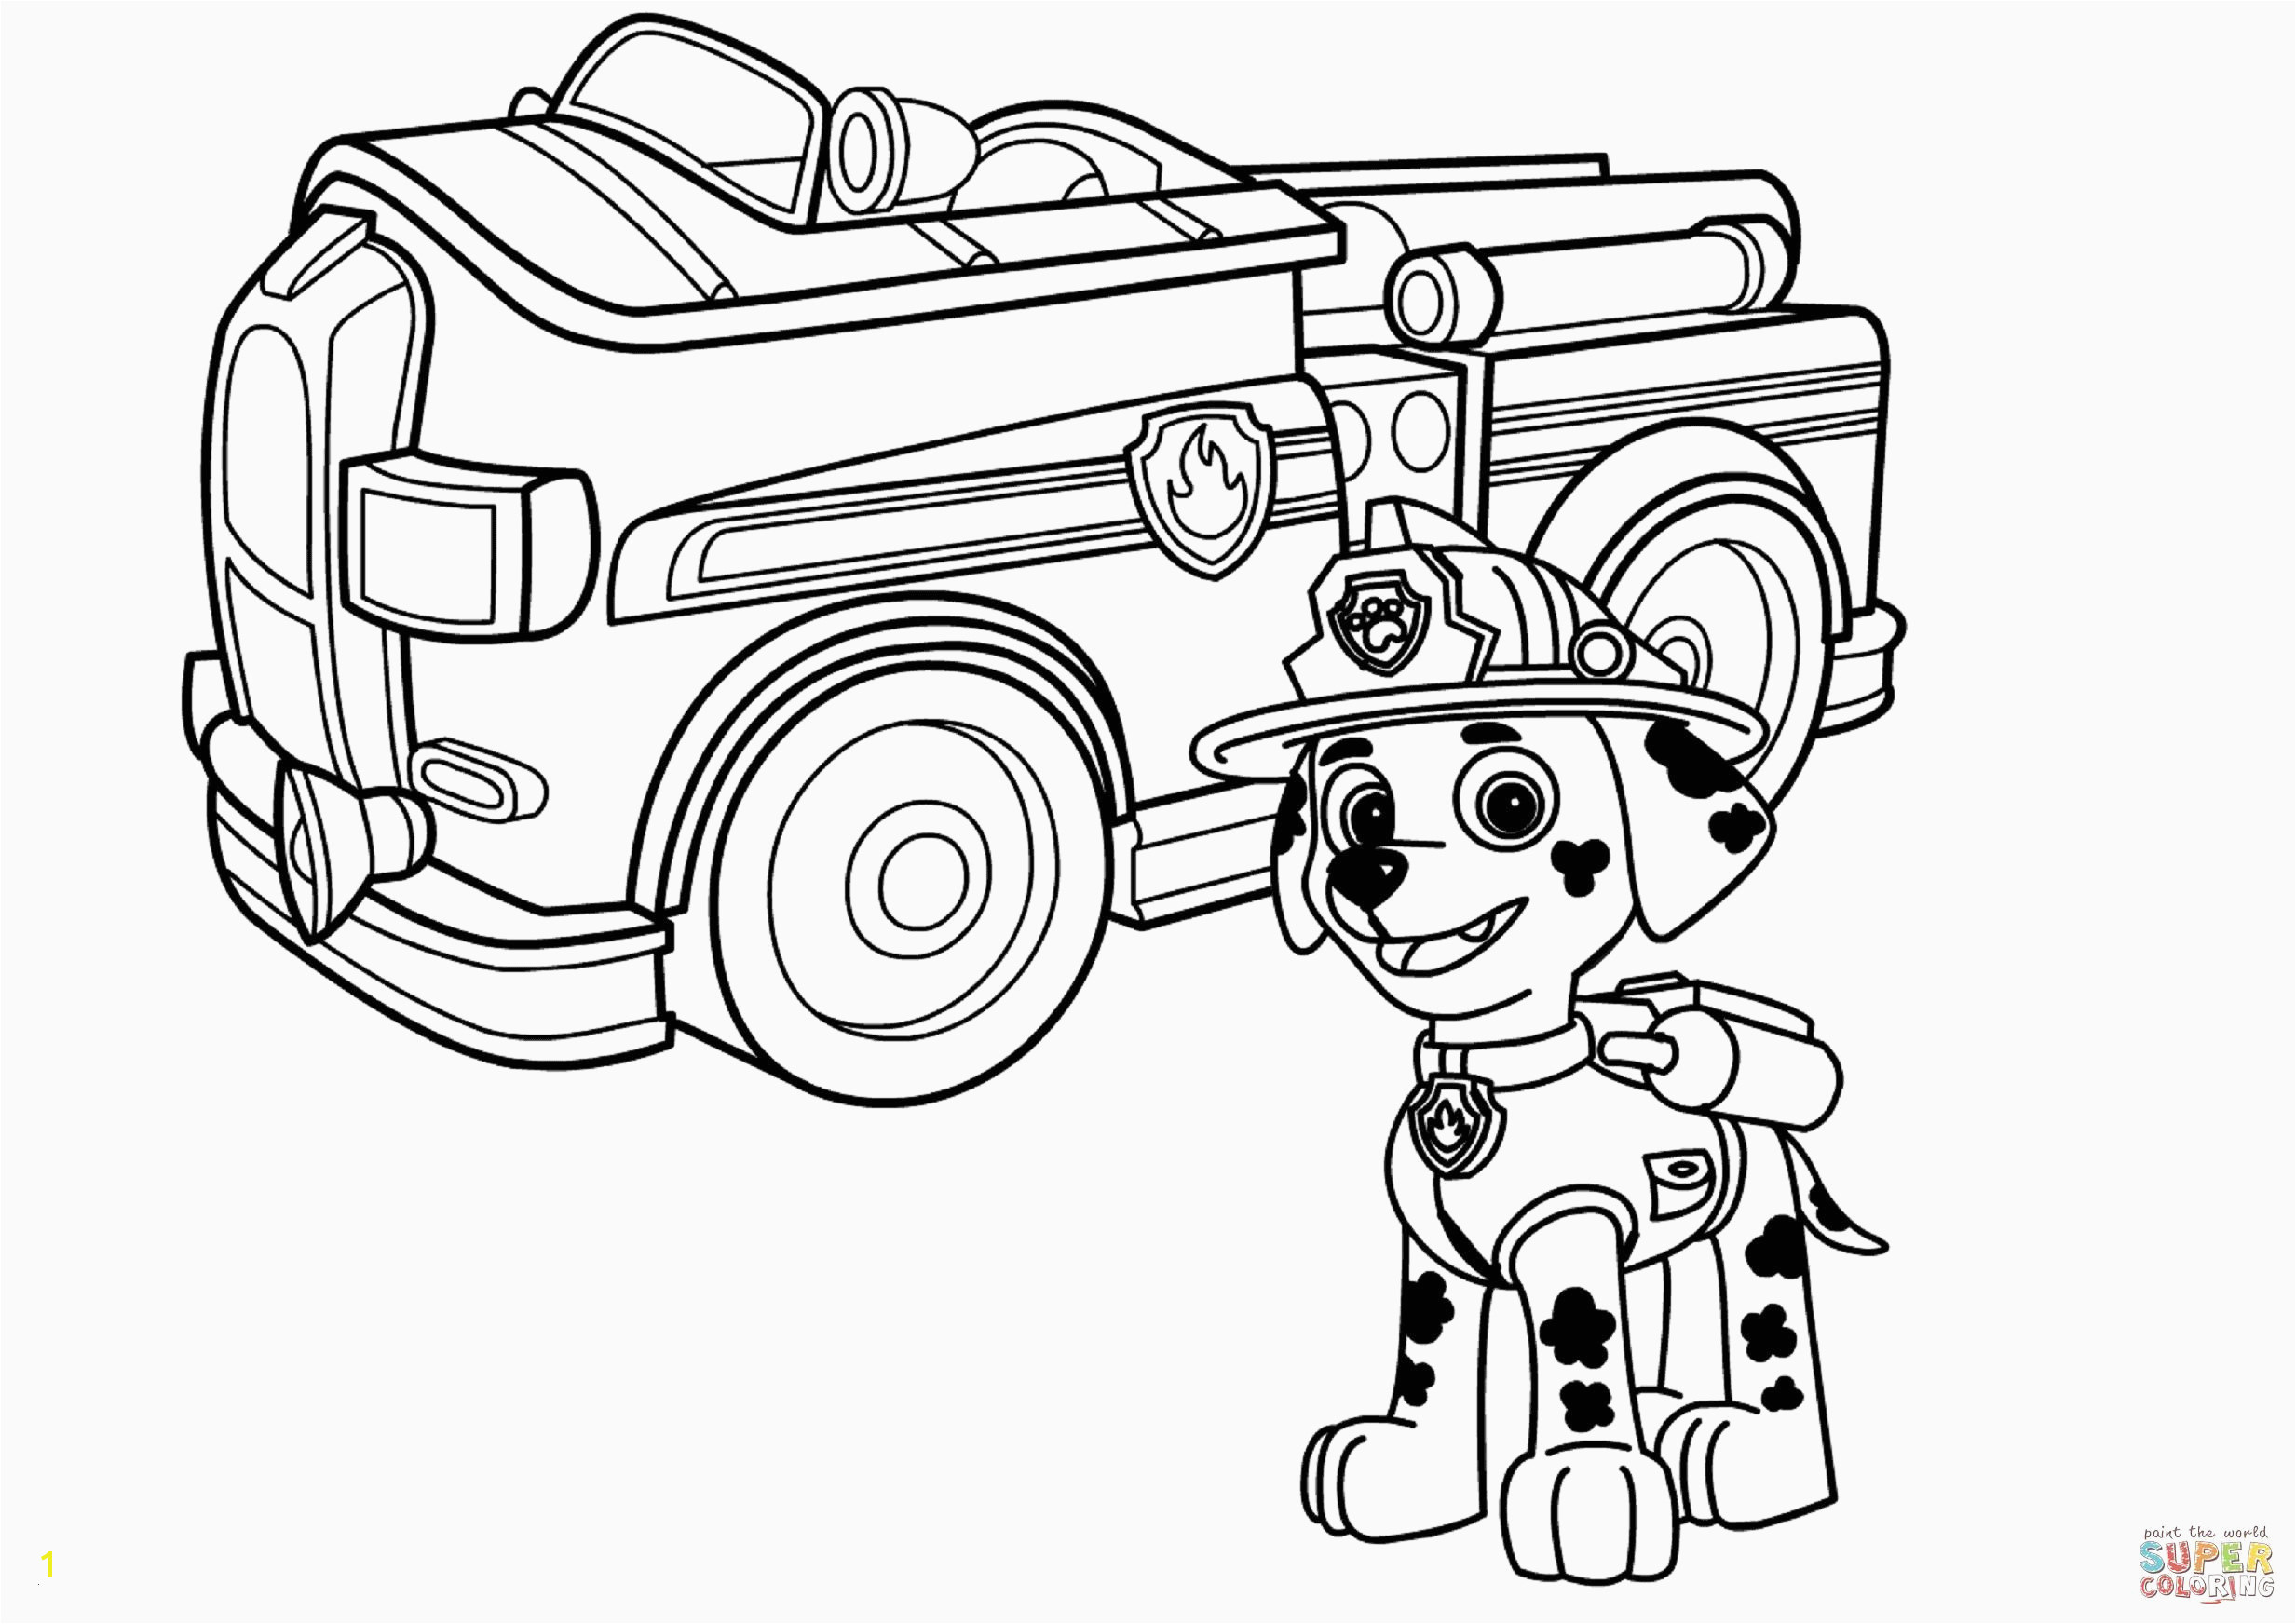 Cartoon Fire Truck Coloring Page Fire Truck Coloring Pages Sample thephotosync